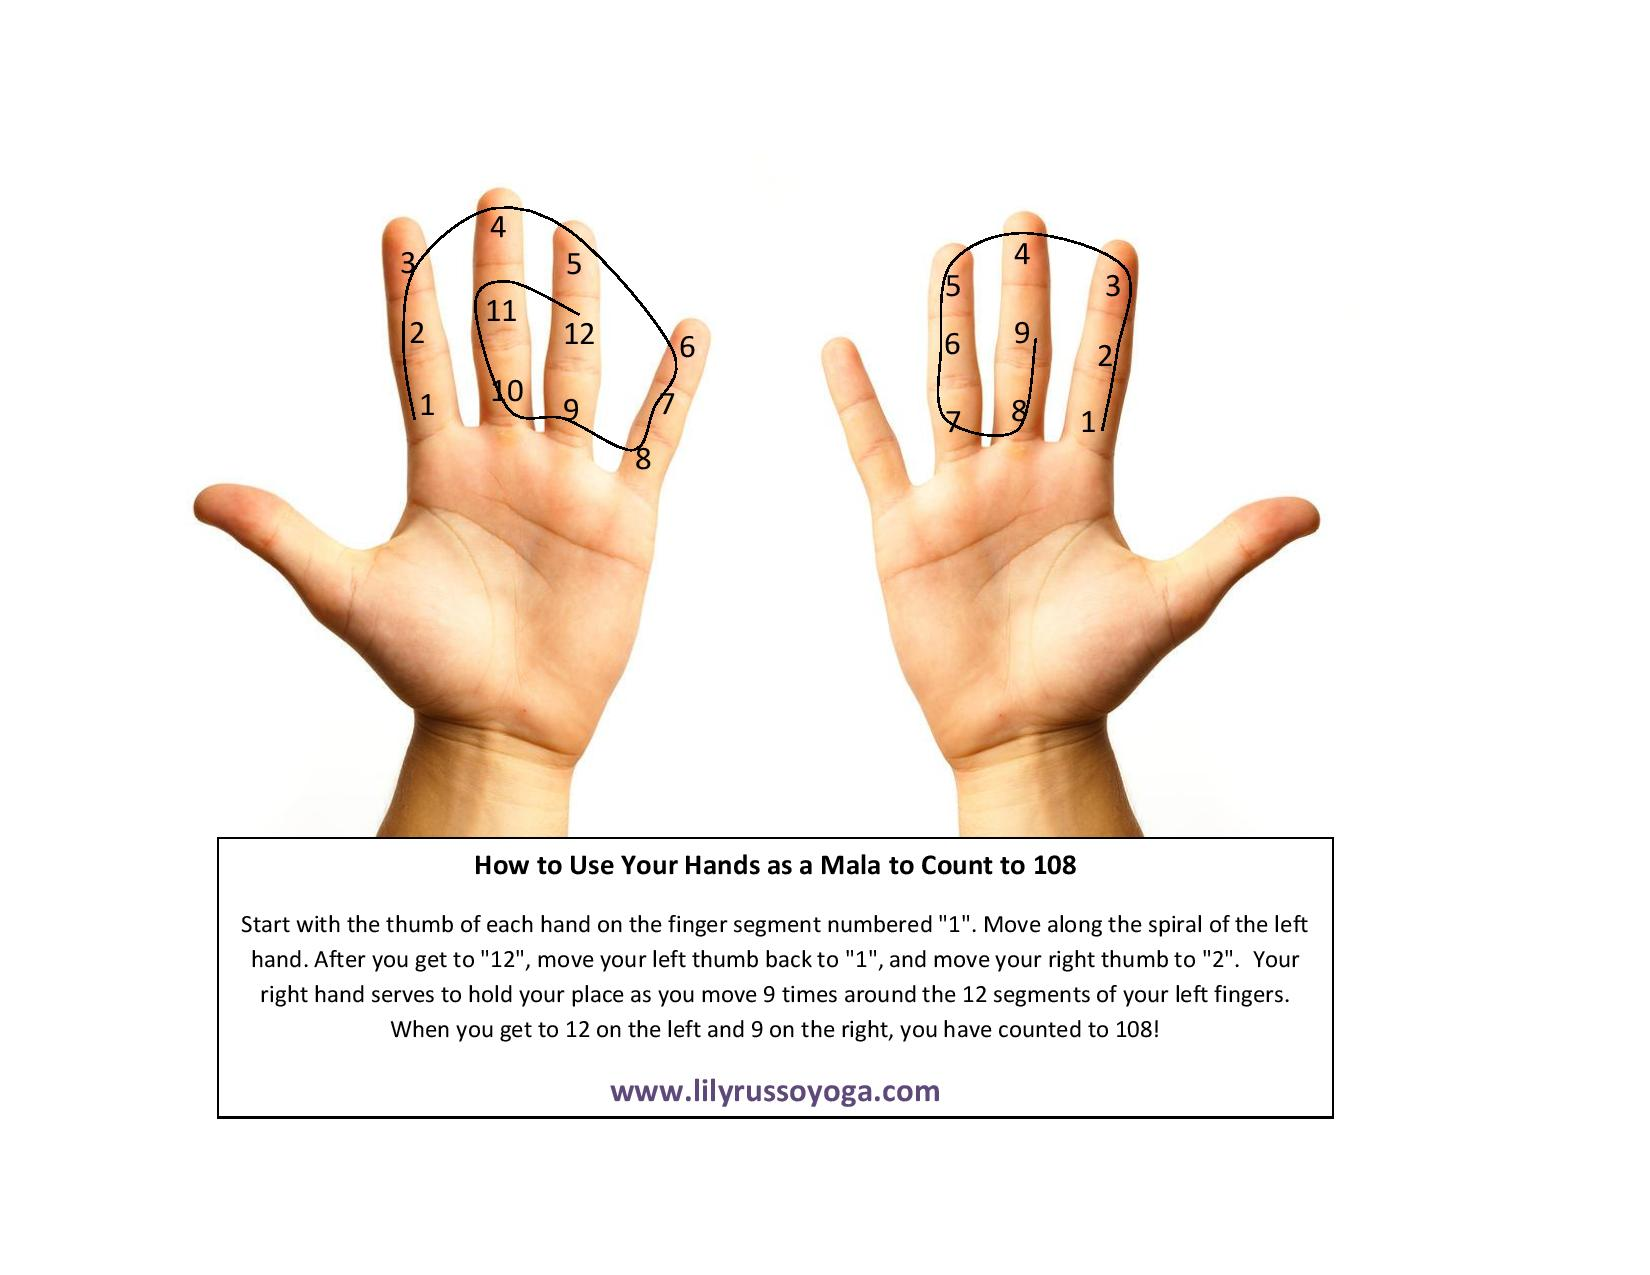 How to use your hands as a mala to count to 108